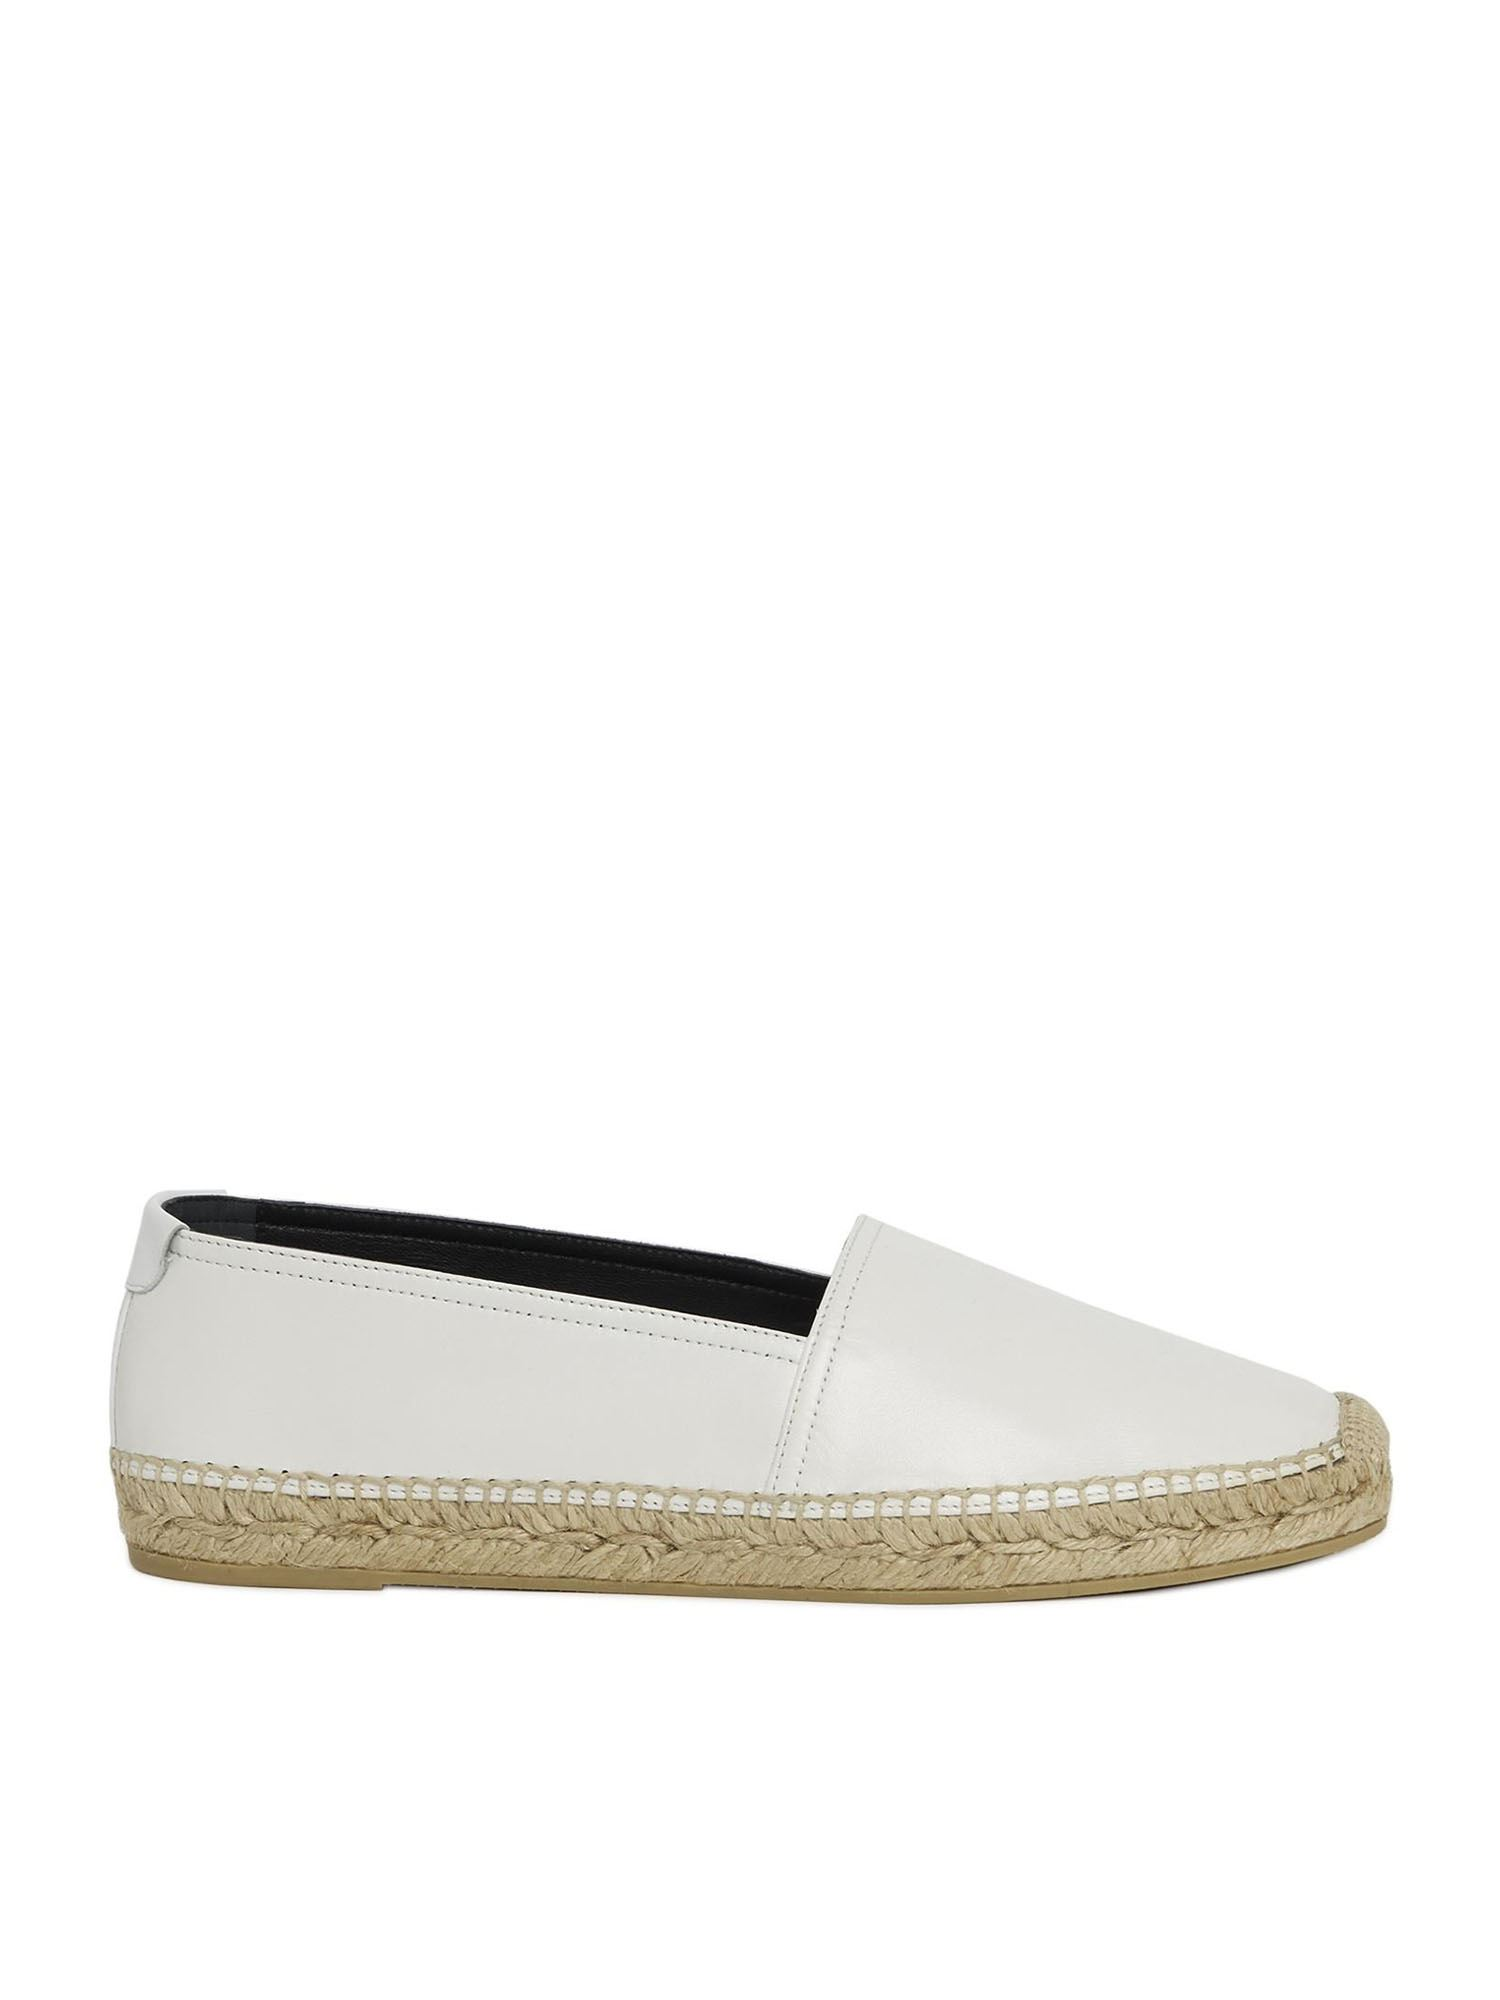 Saint Laurent Leathers LEATHER ESPADRILLES IN WHITE